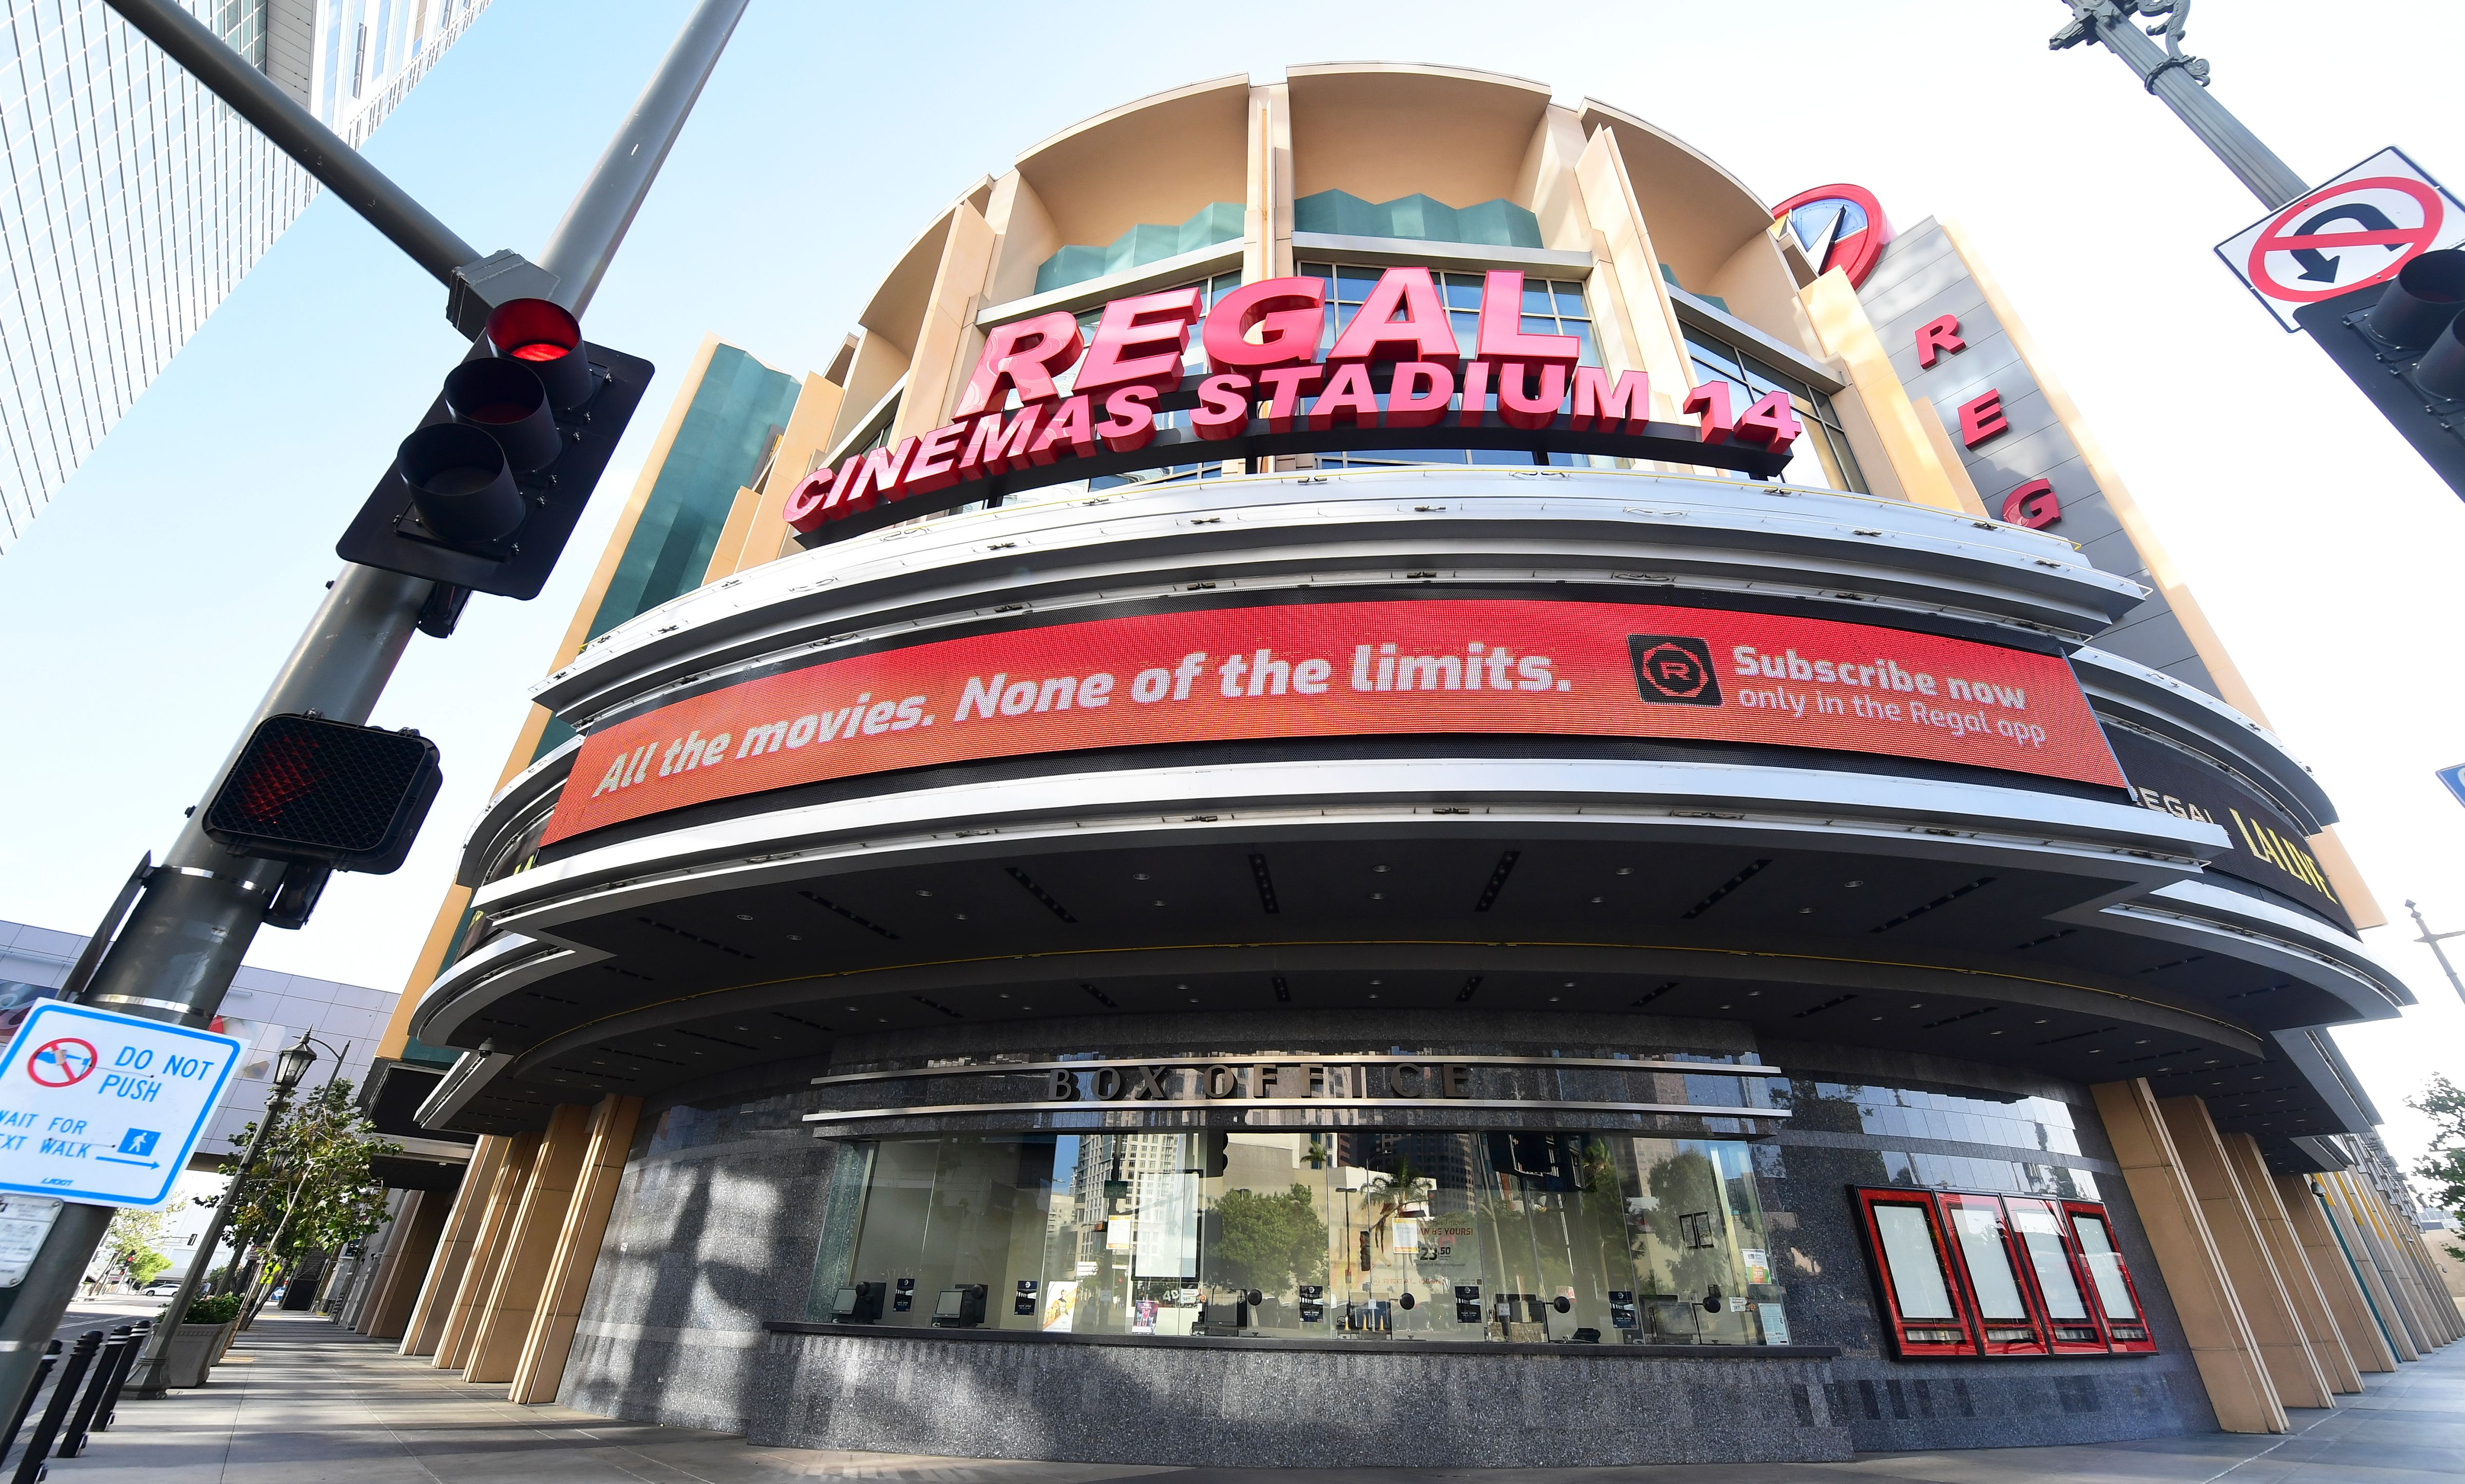 Rio Regal Owner Of Regal Cinemas Considering Closing All Movie Theaters In U.s. | Ktla